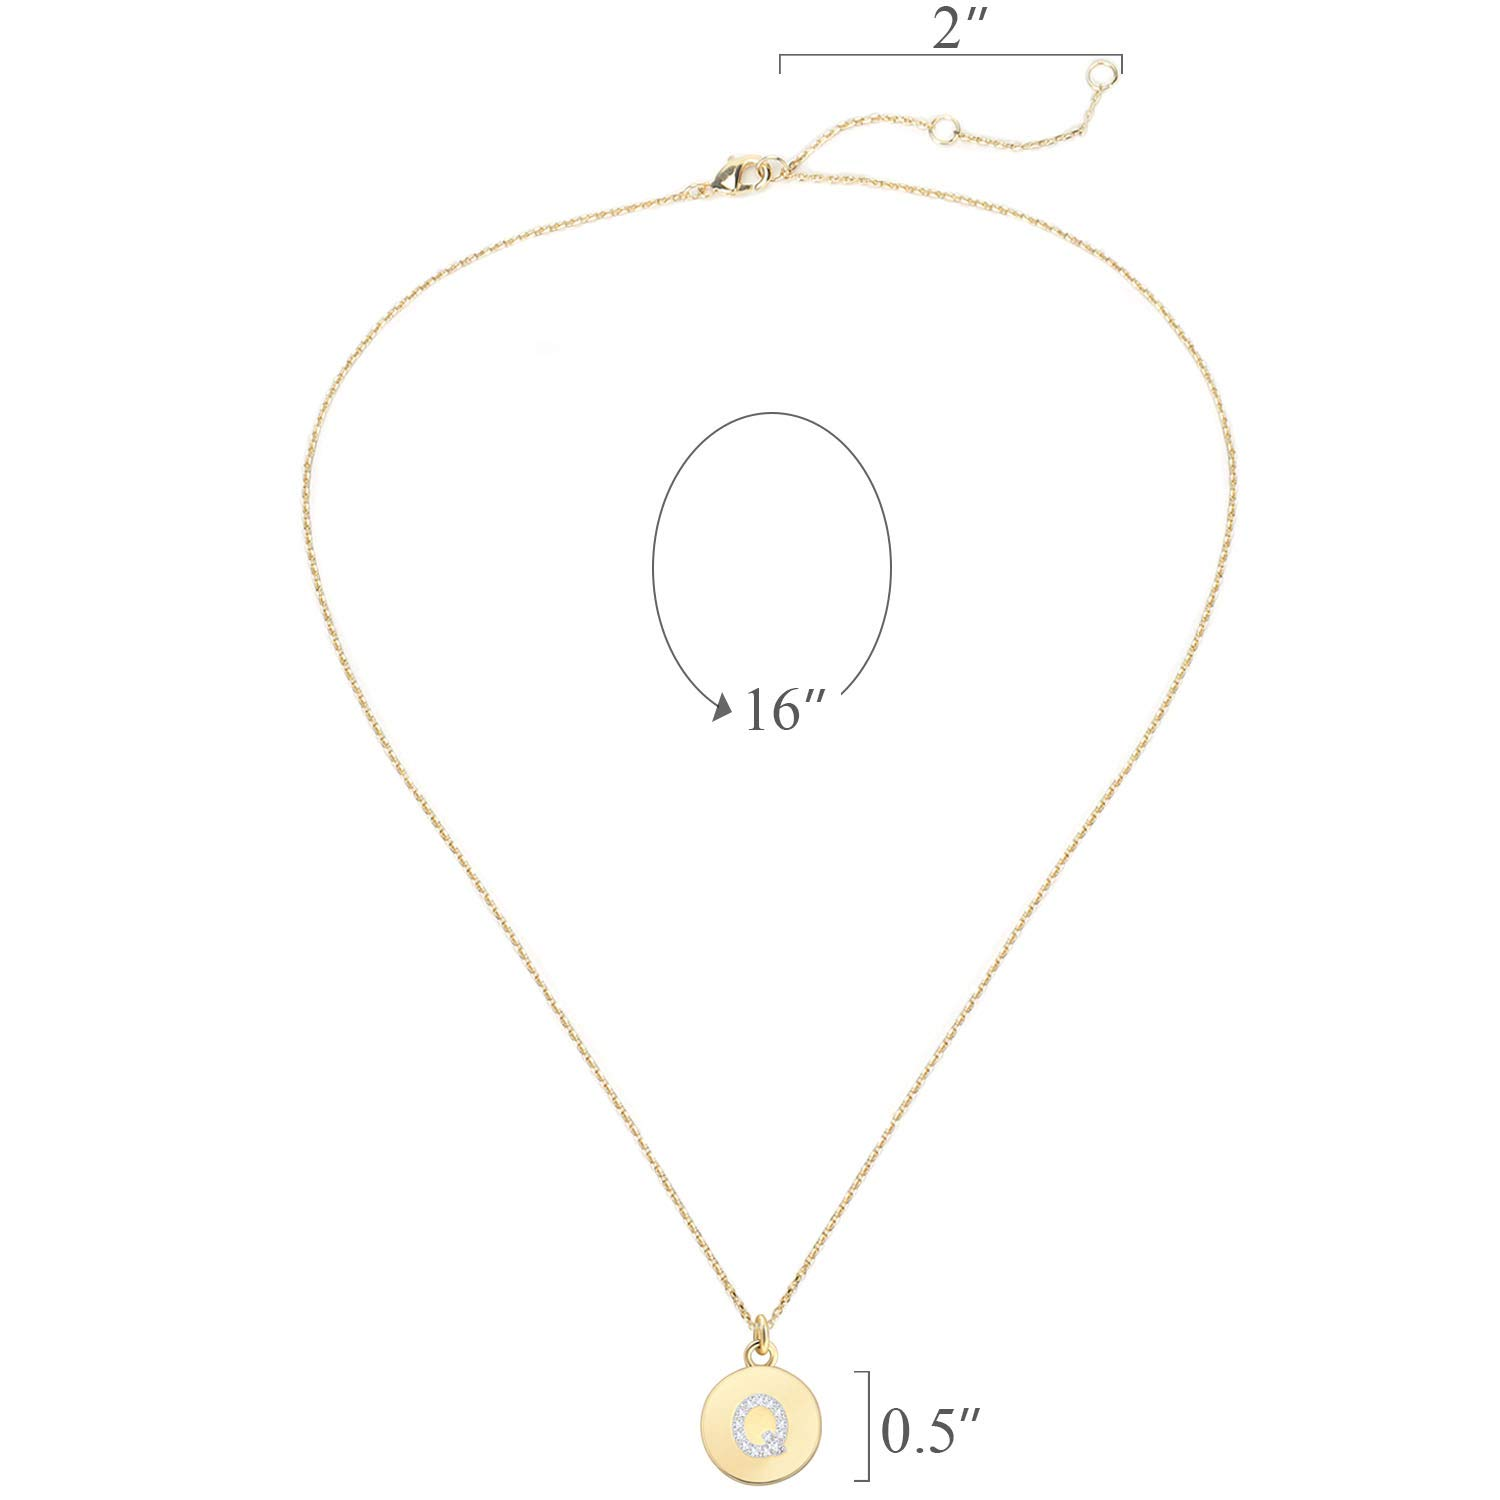 BOUTIQUELOVIN 14k Gold Disc Initial Letter Necklace Dainty Tiny Round Personalized Alphabet Pendant for Women Girls